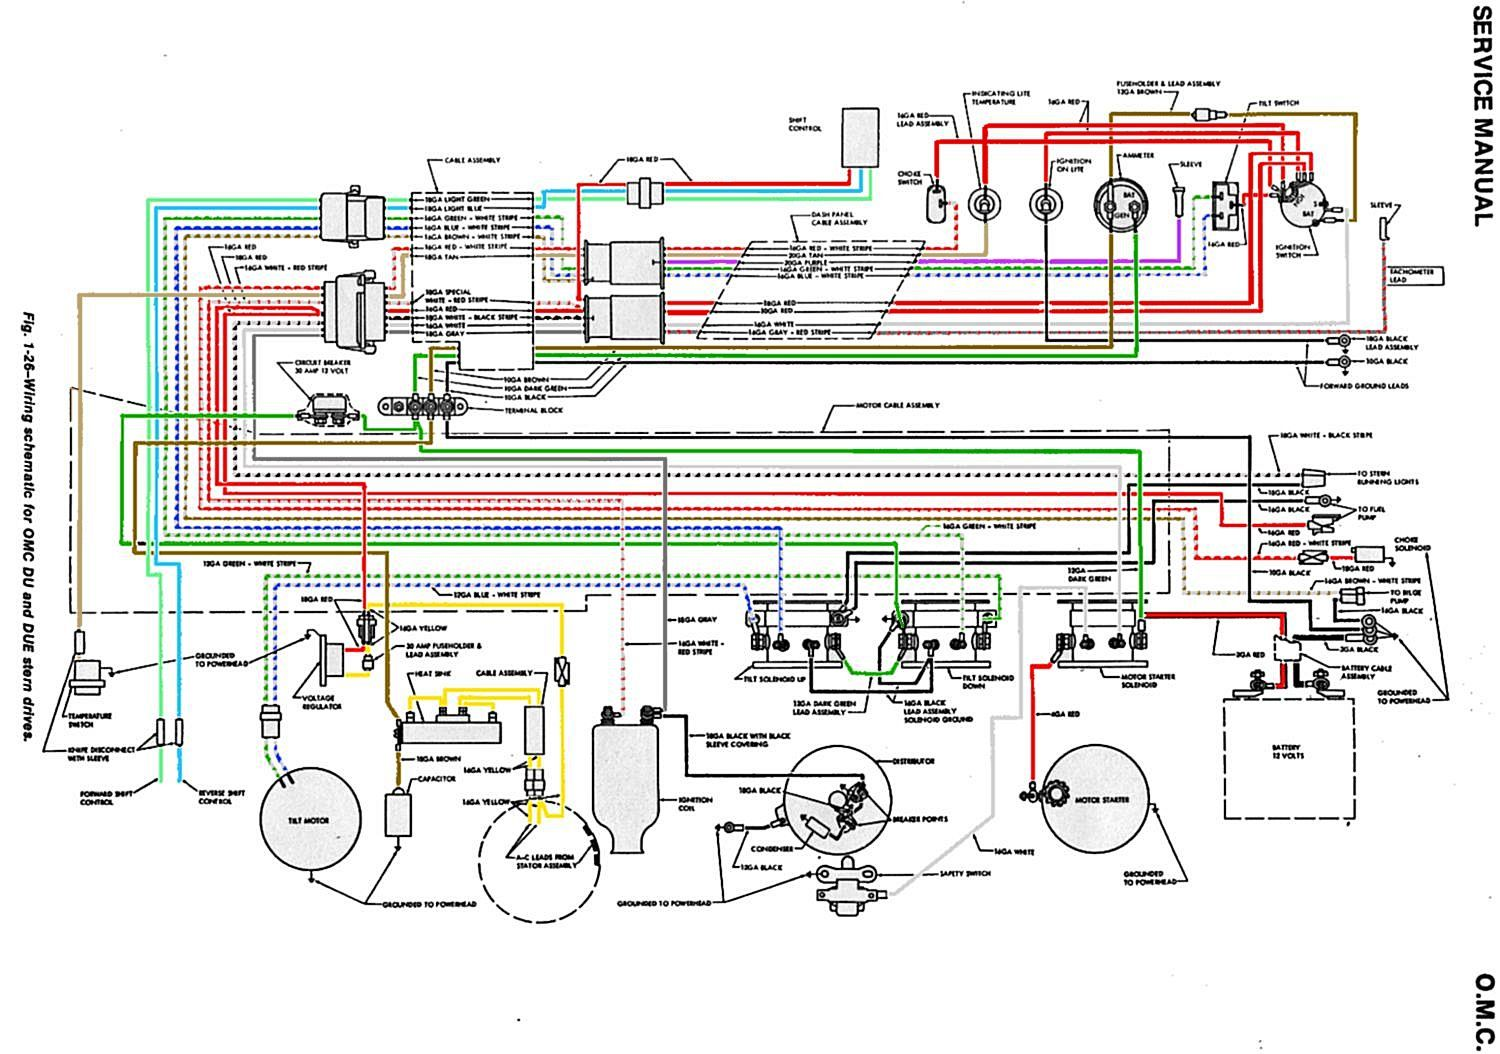 wiring diagram mercury outboard – the wiring diagram, Wiring diagram